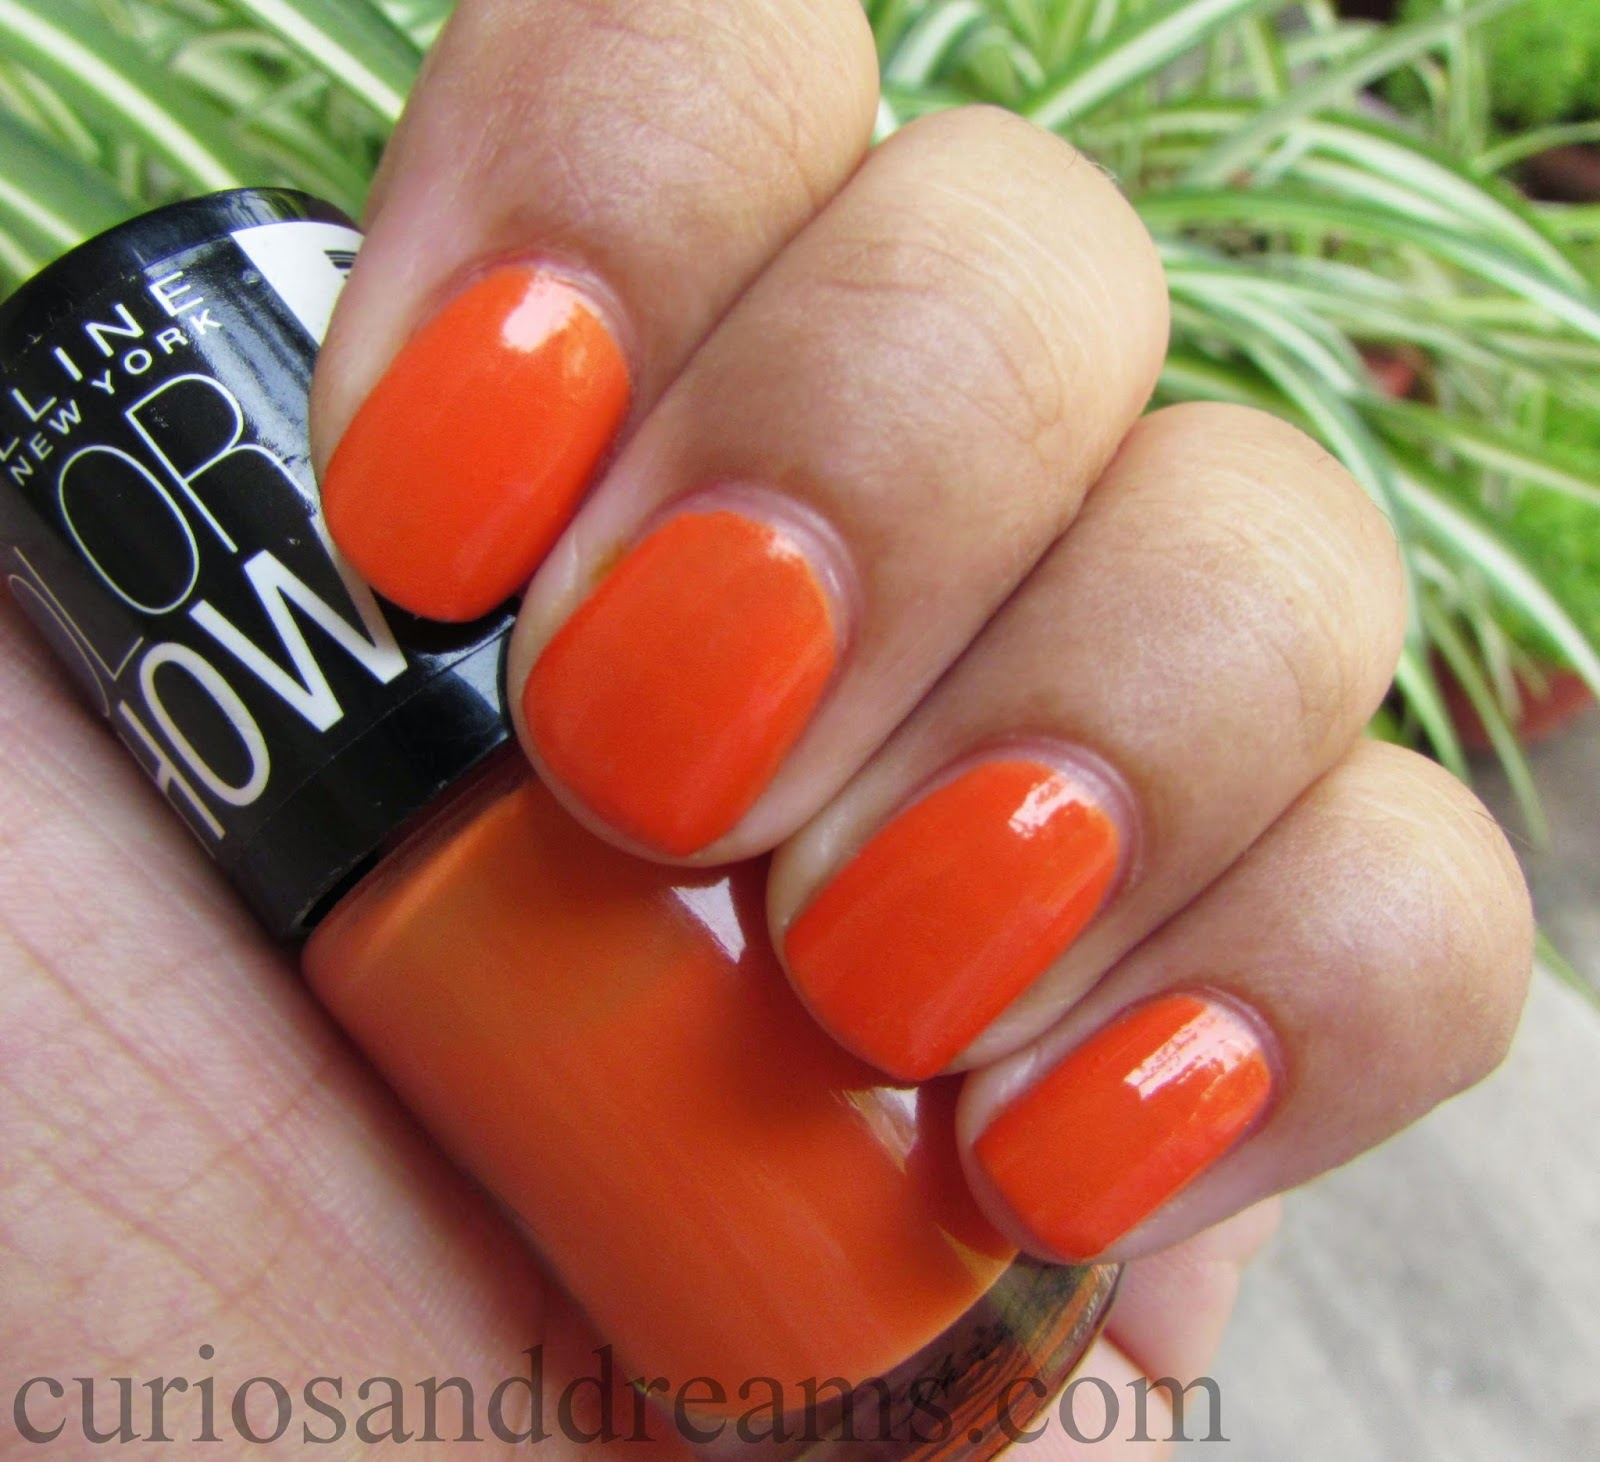 Maybelline Color Show Tangerine Treat review, Maybelline Color Show Tangerine Treat swatc